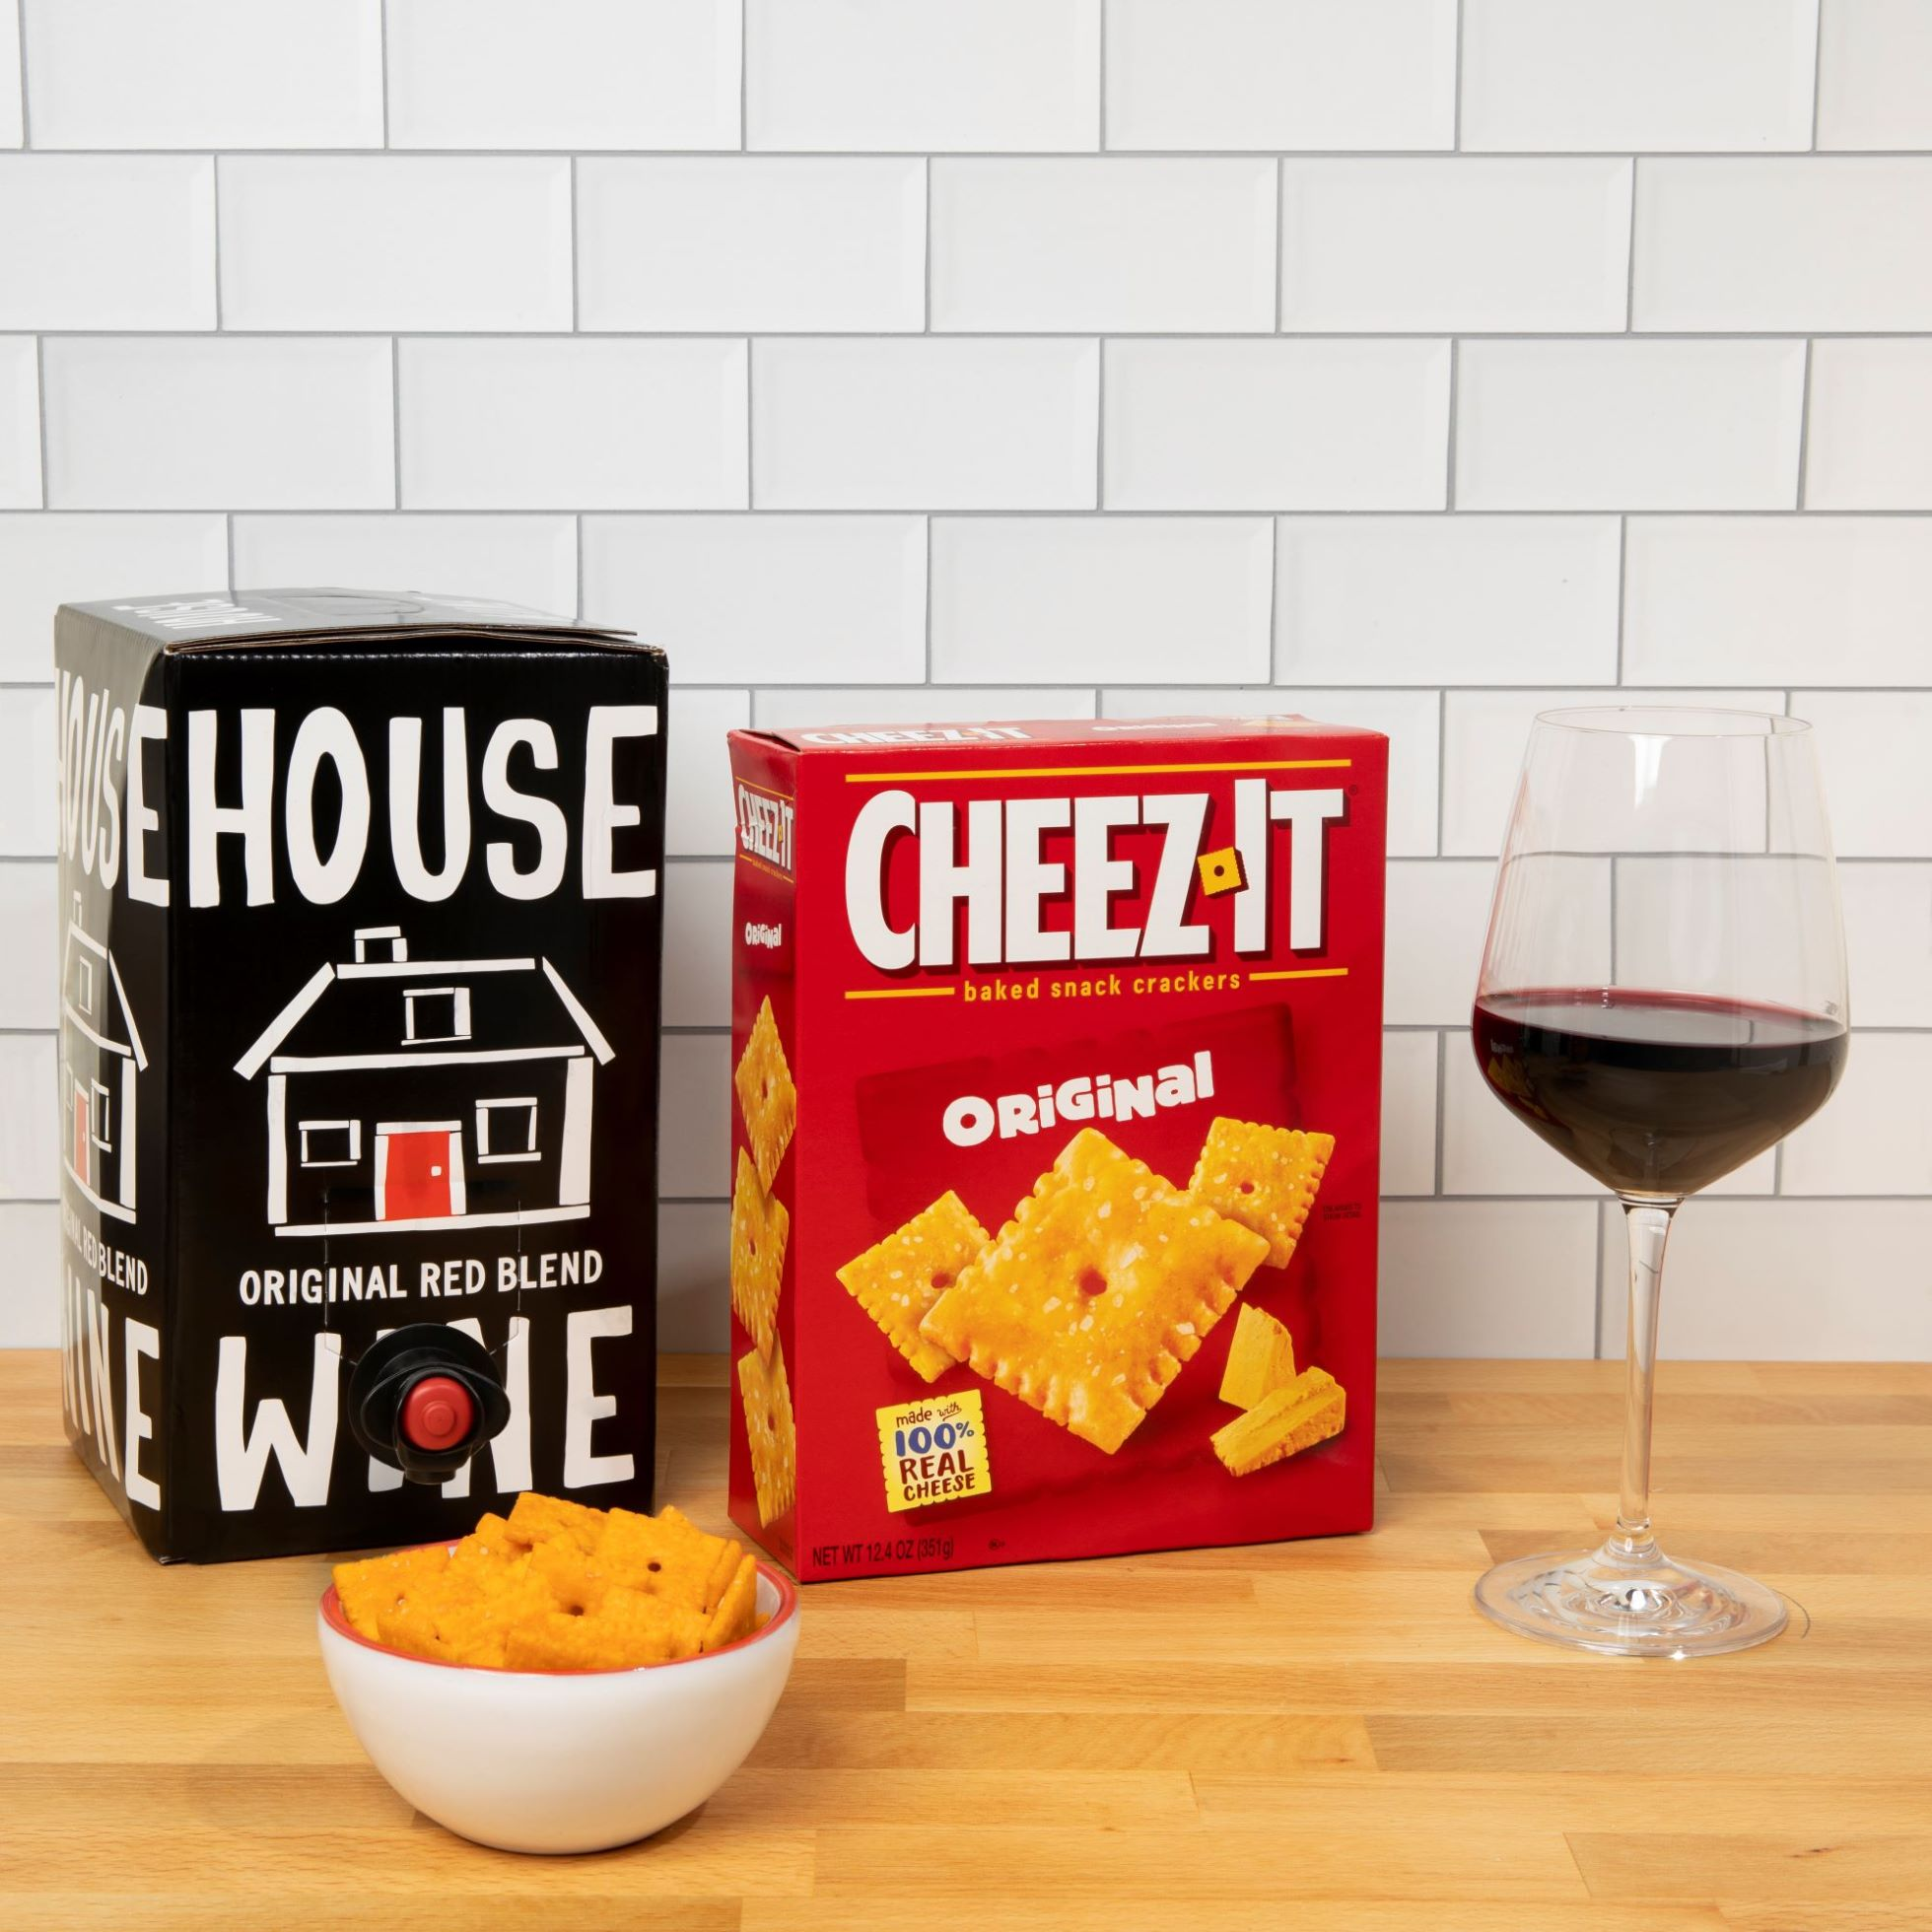 House Wine Red Blend box and Cheez-It original crackers on counter